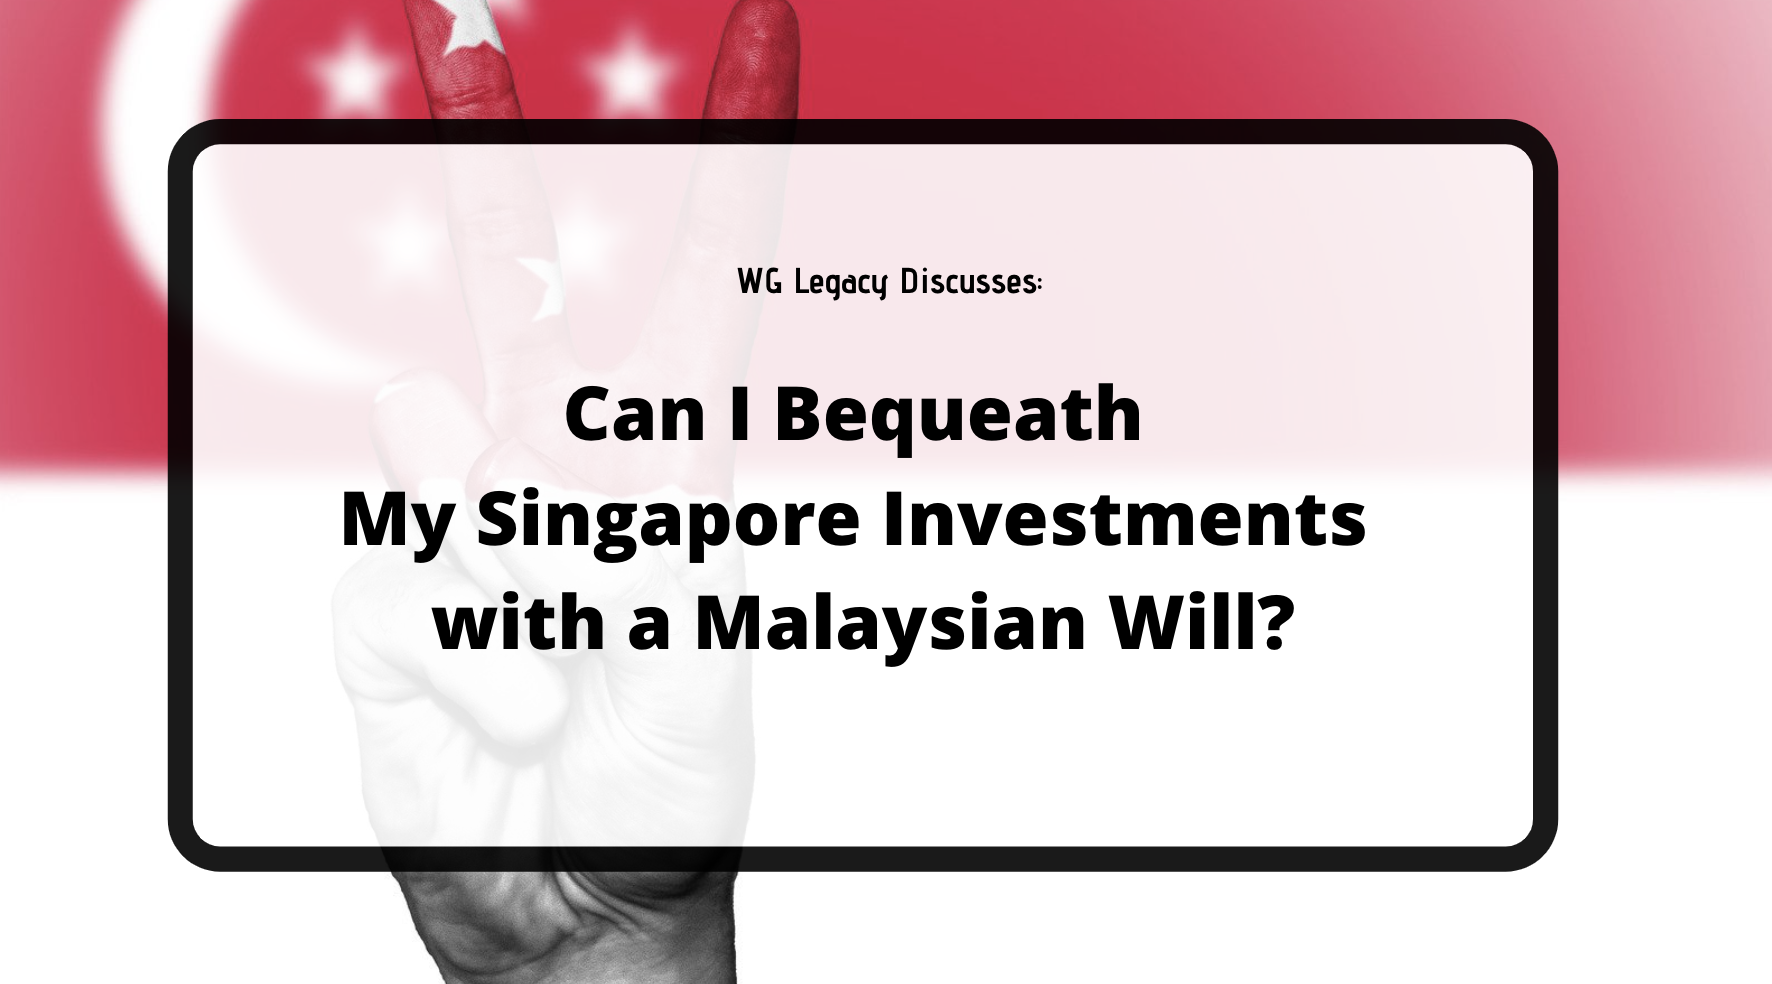 Can I Bequeath My Singapore Investments with a Malaysian Will?